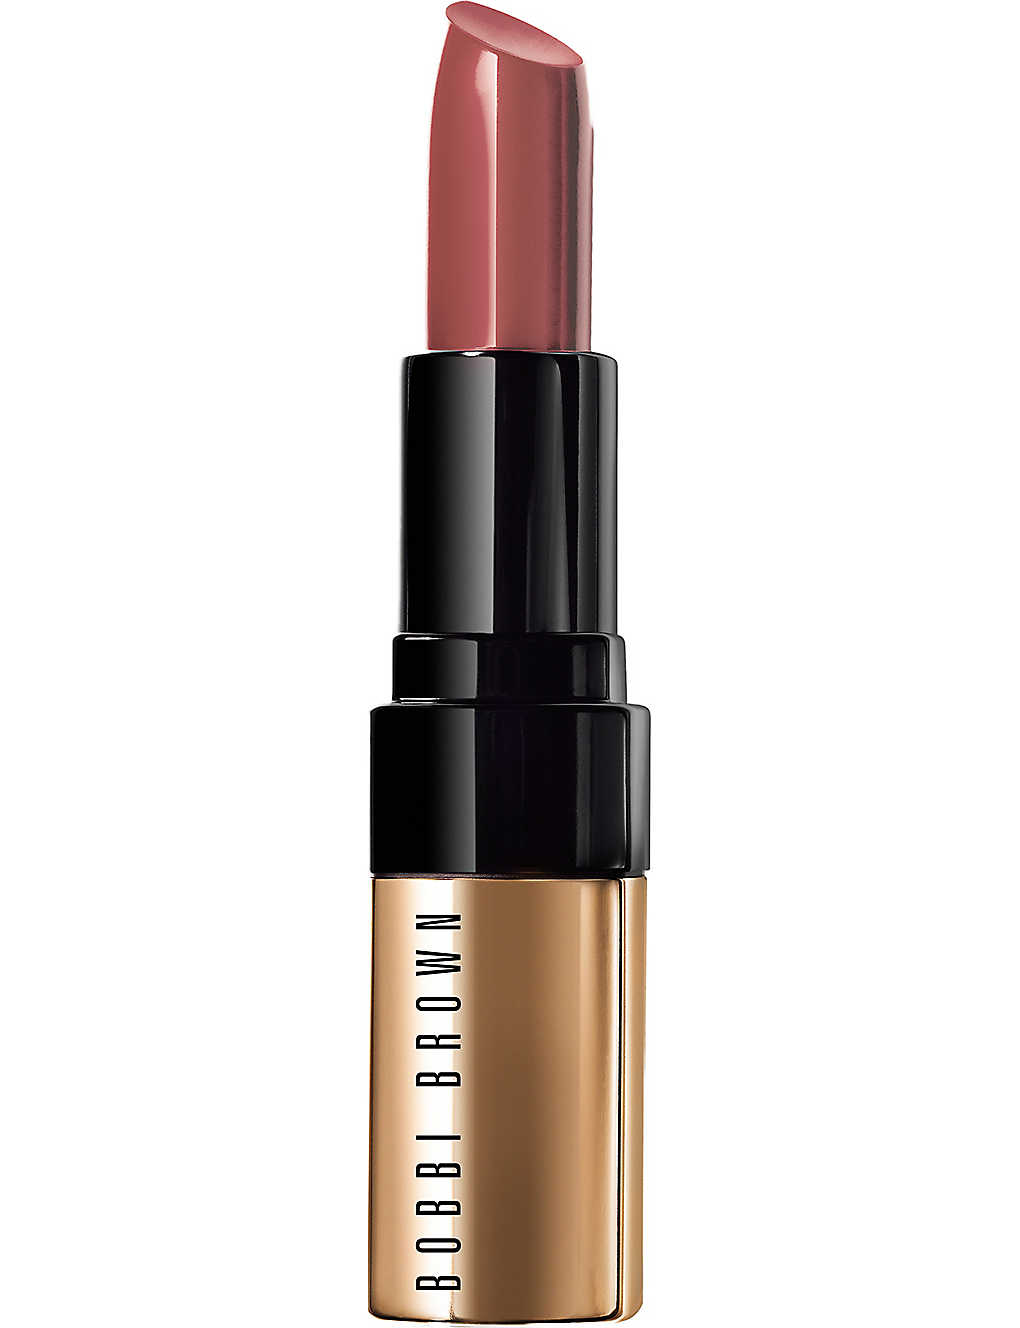 Bobbi Brown Luxe Lip Colour 3.8g In Neutral Rose